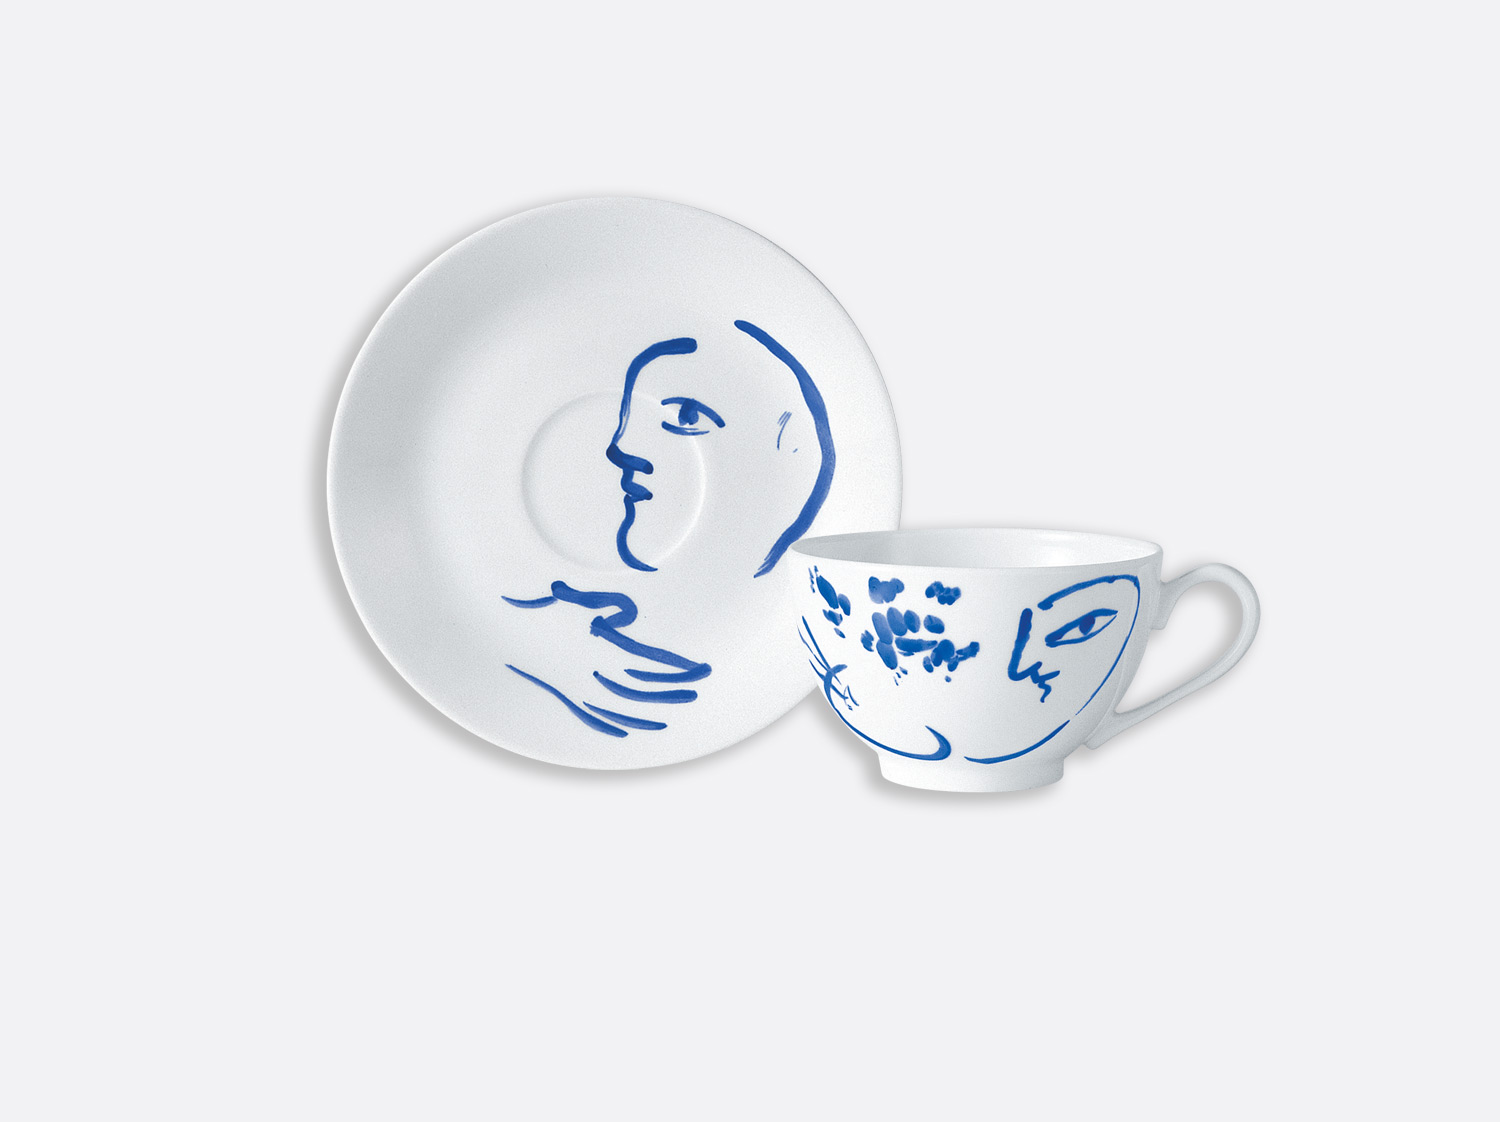 Tasse thé le regard du peintre en porcelaine de la collection Pour ida Bernardaud